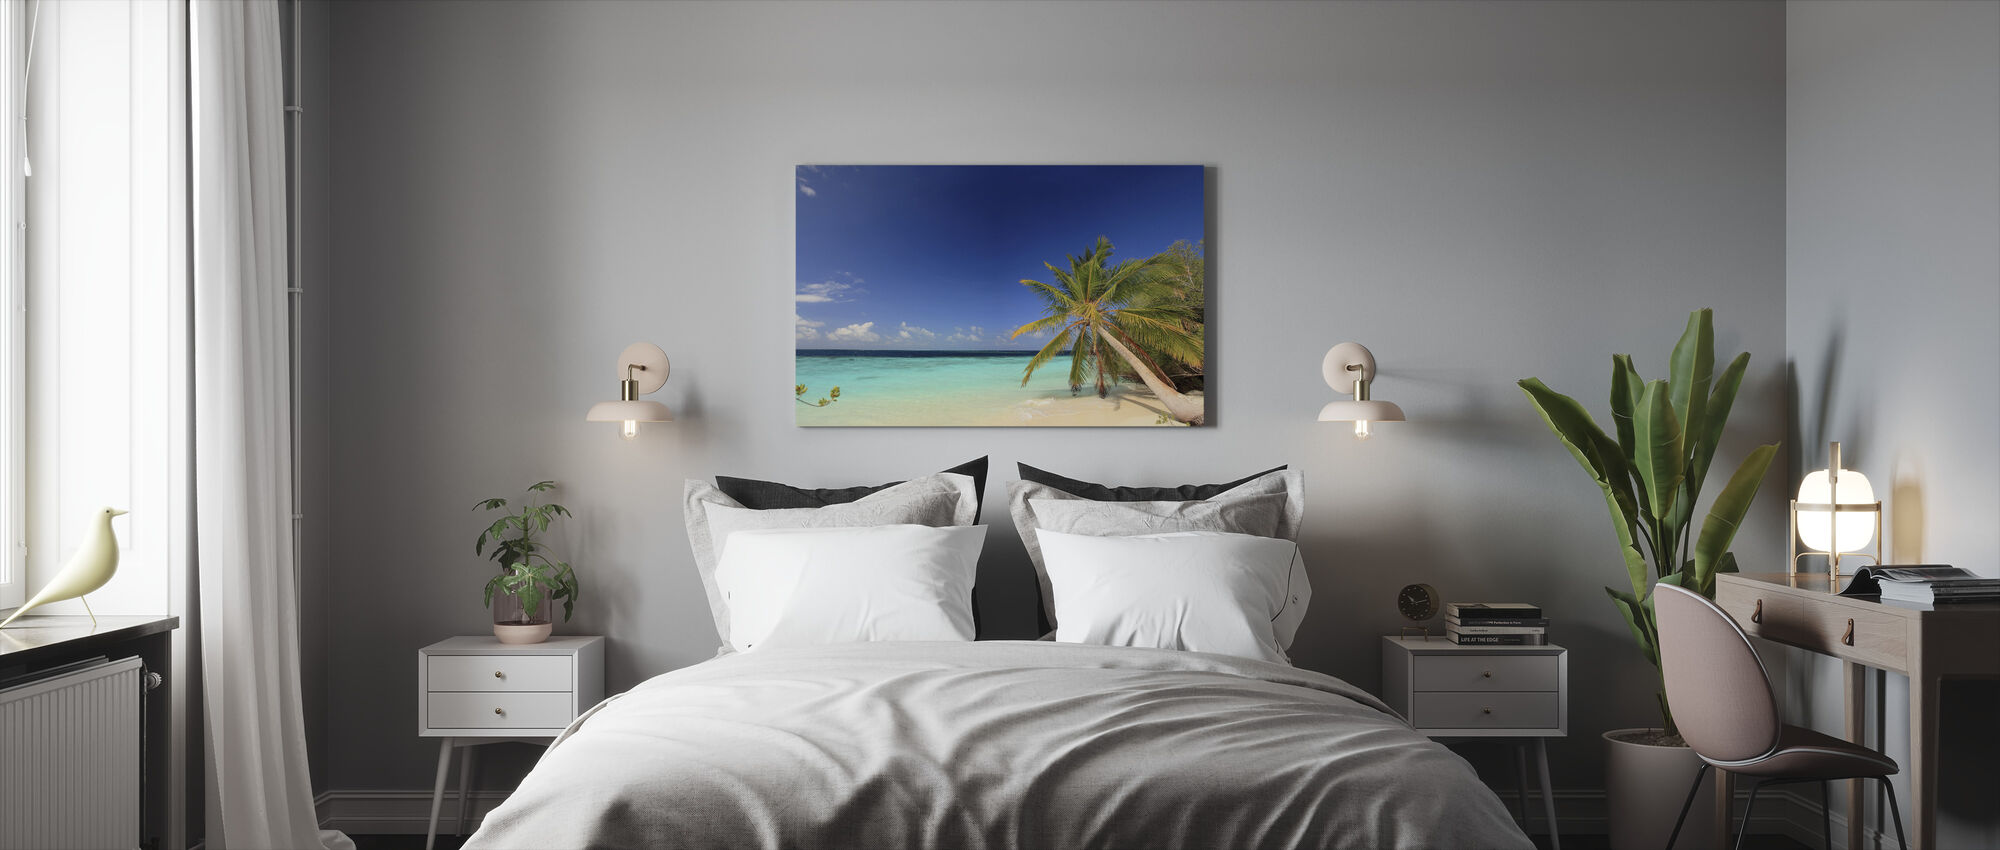 Beach Harmony - Canvas print - Bedroom